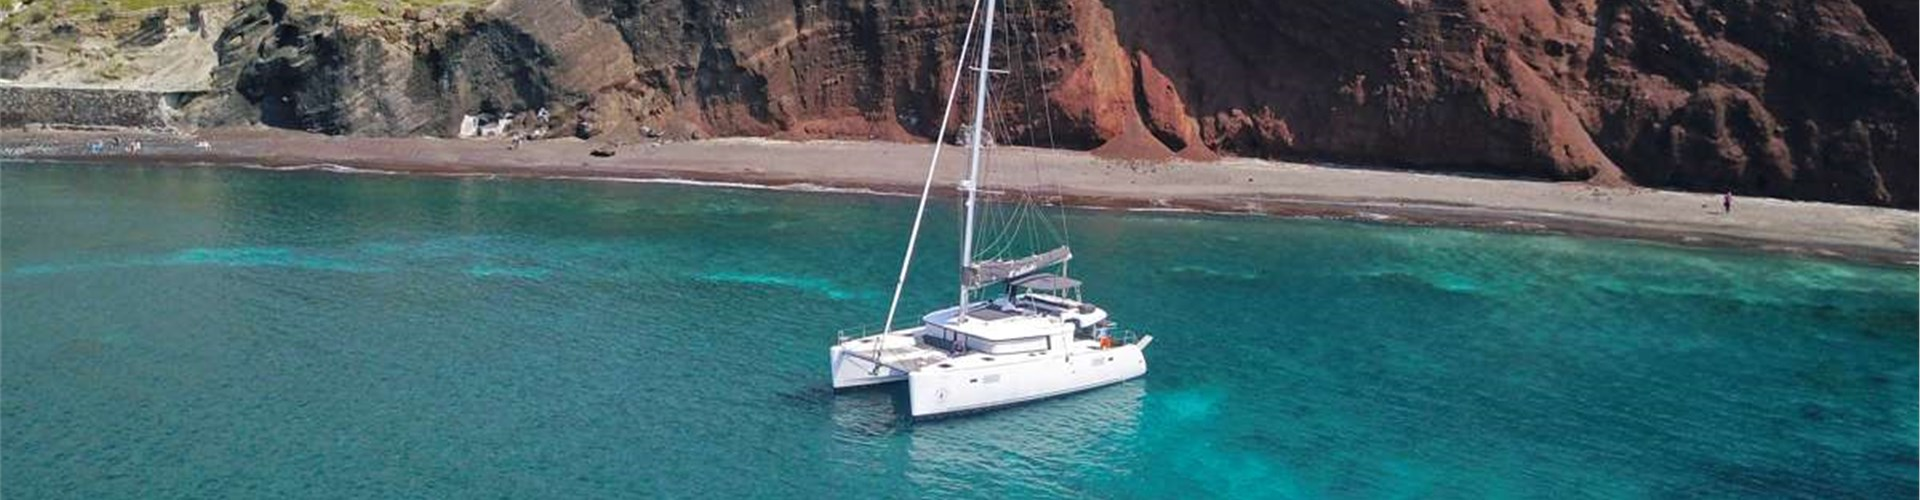 Photo of Luxury Catamaran Sunset Cruise with BBQ Fresh Fish/Seafood Meal & Drinks